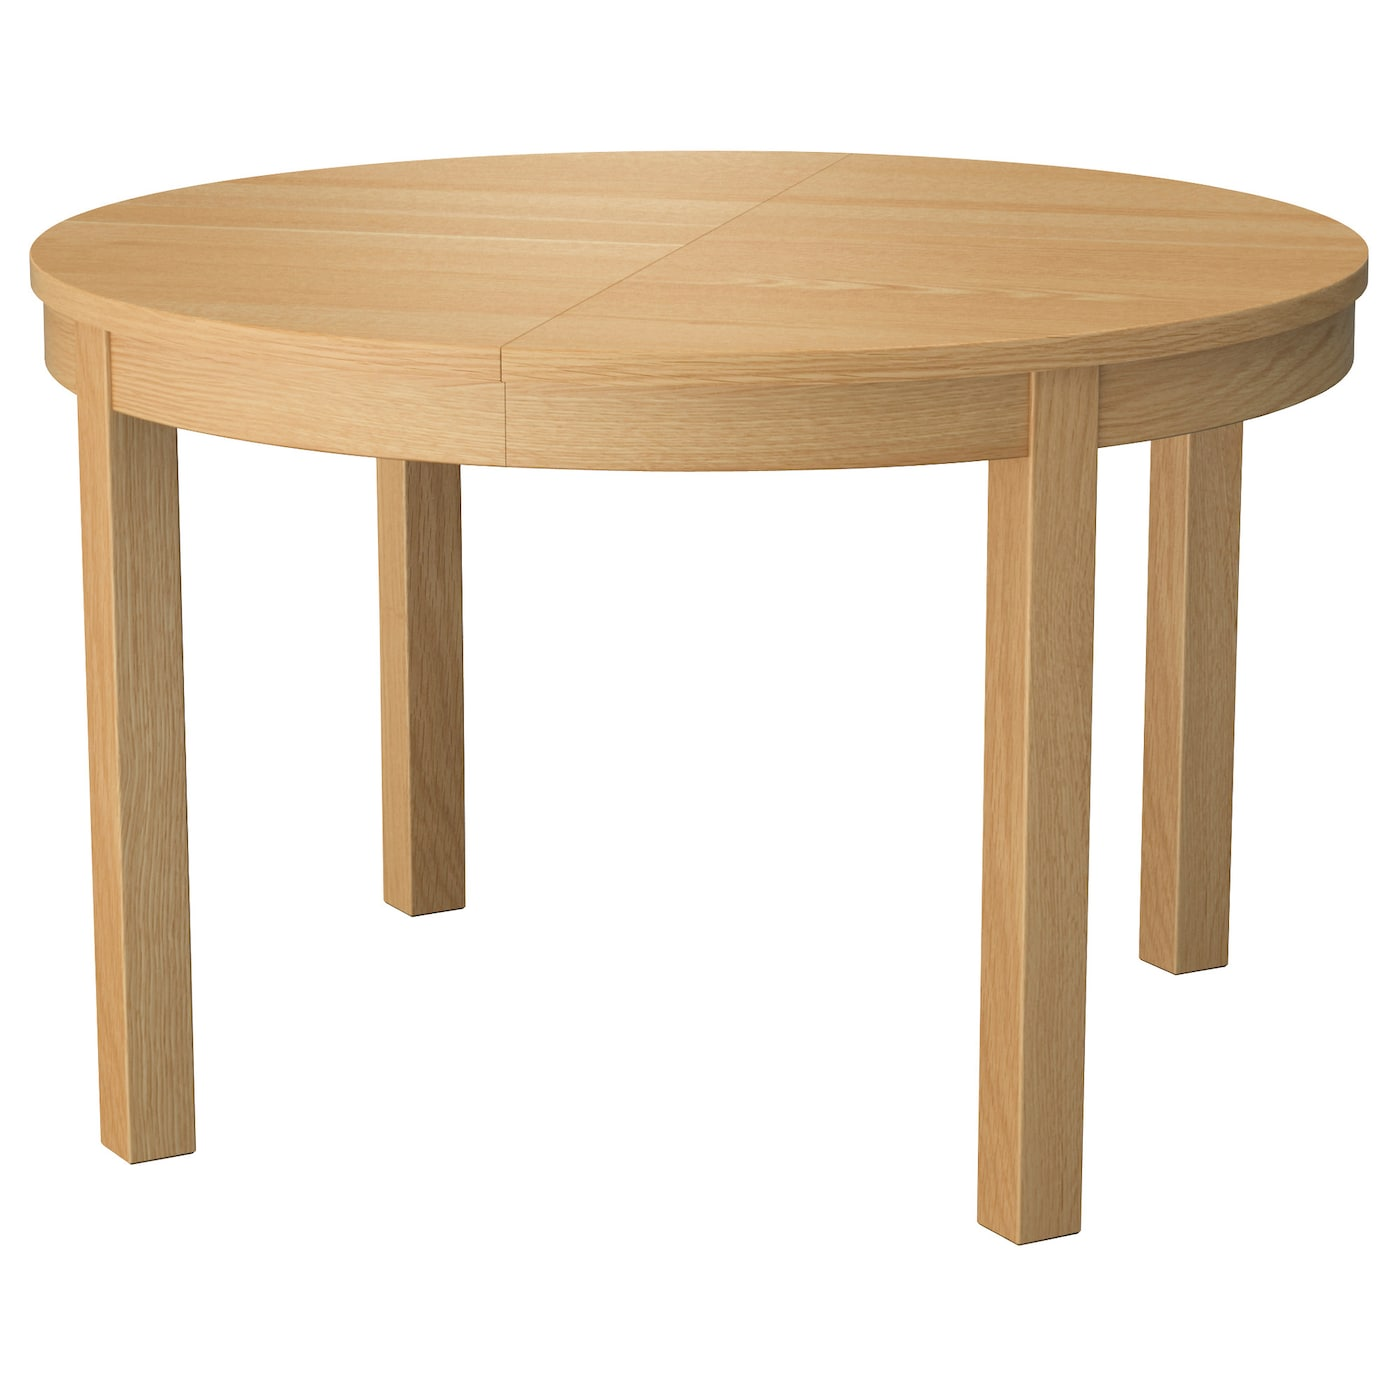 Dining Room Tables Ikea: Round Dining Tables